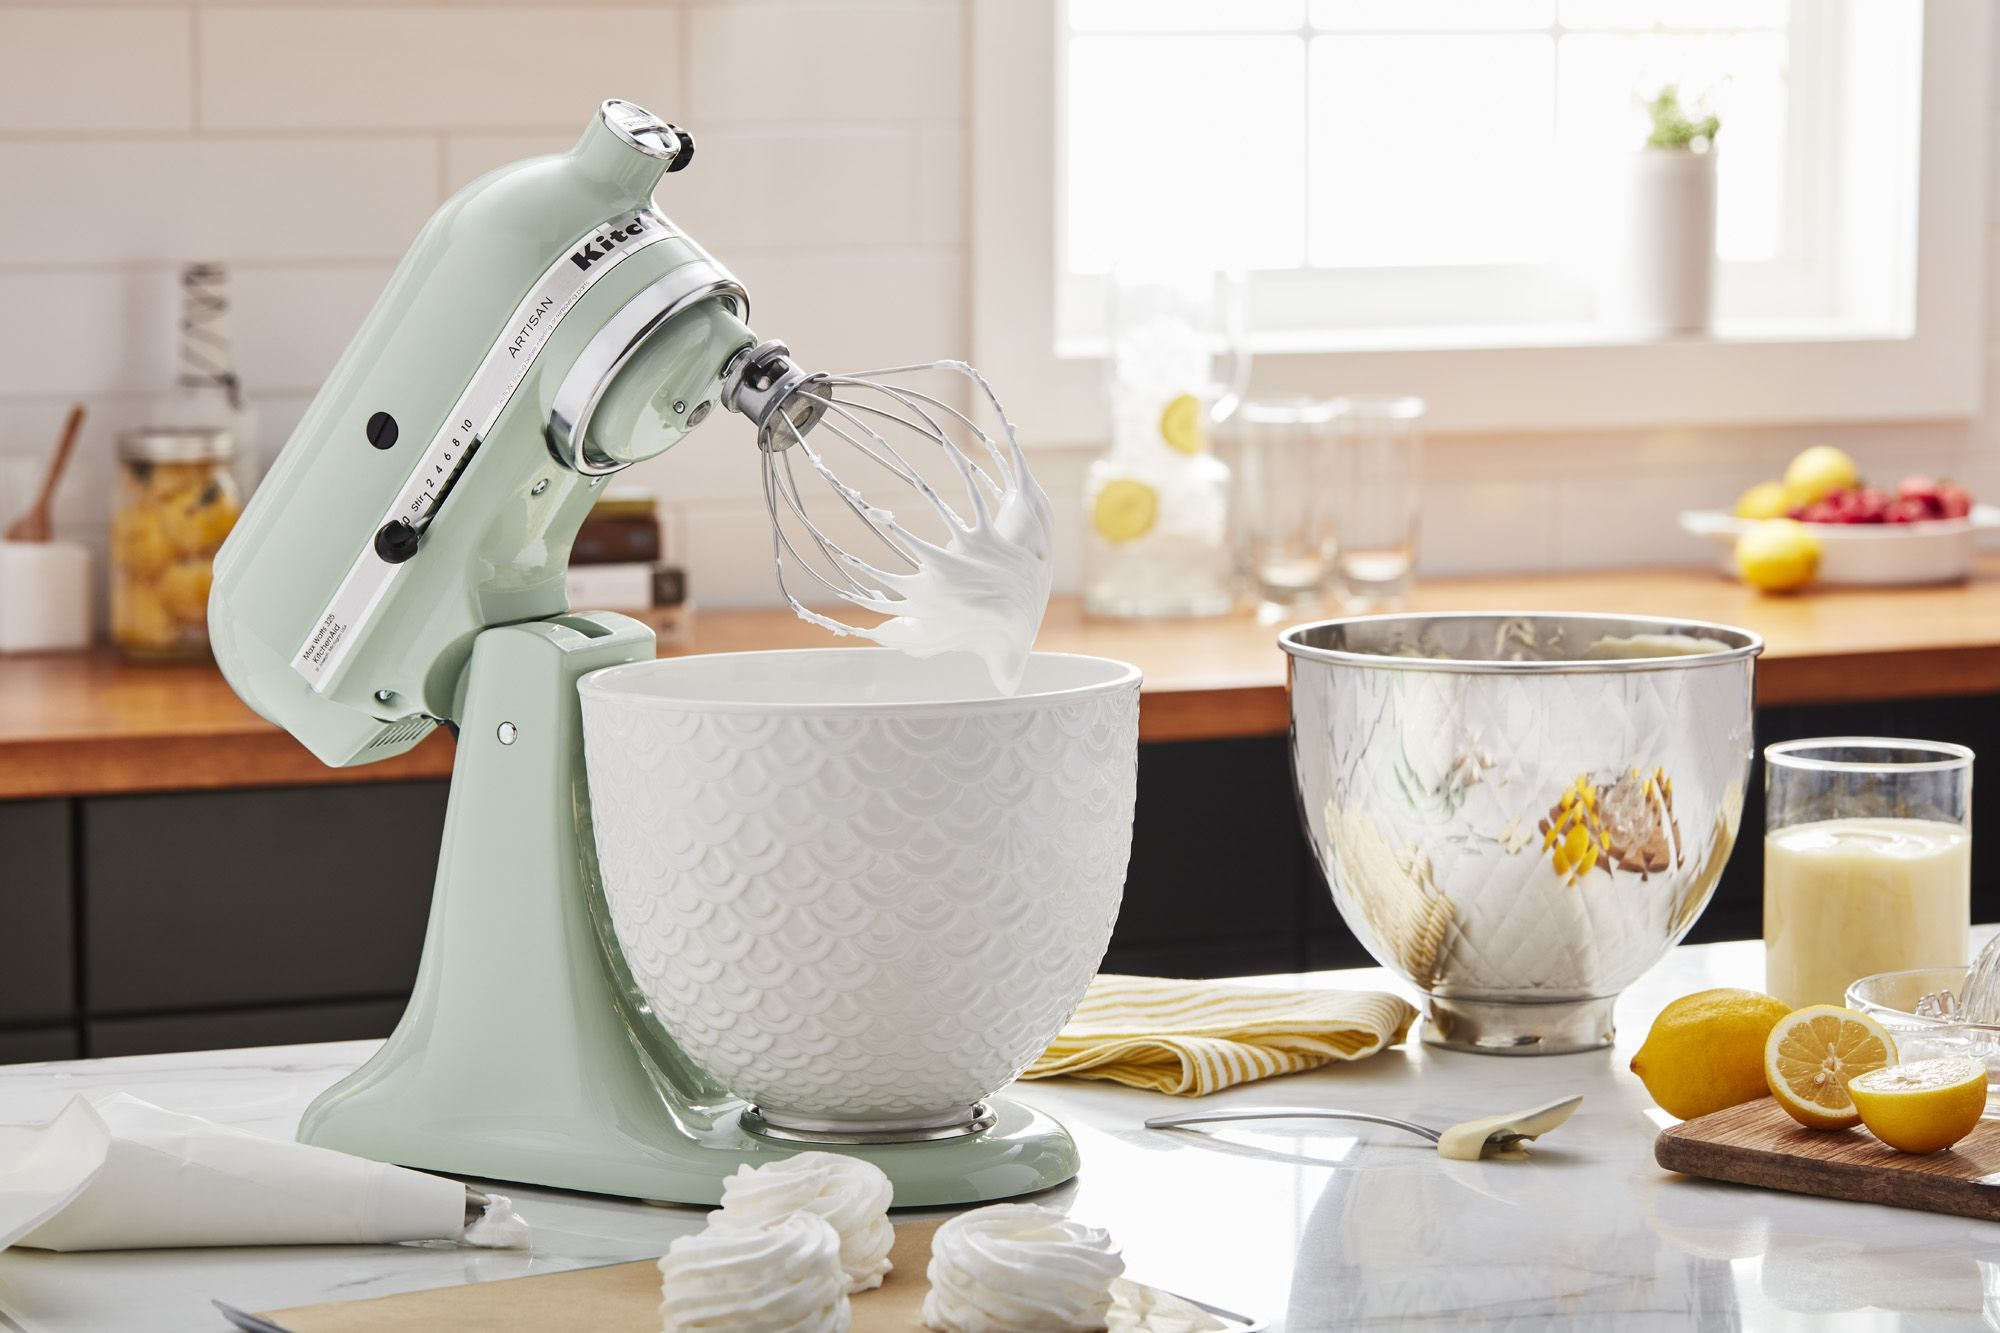 Kitchenaid now offers customized stand mixers and theyre